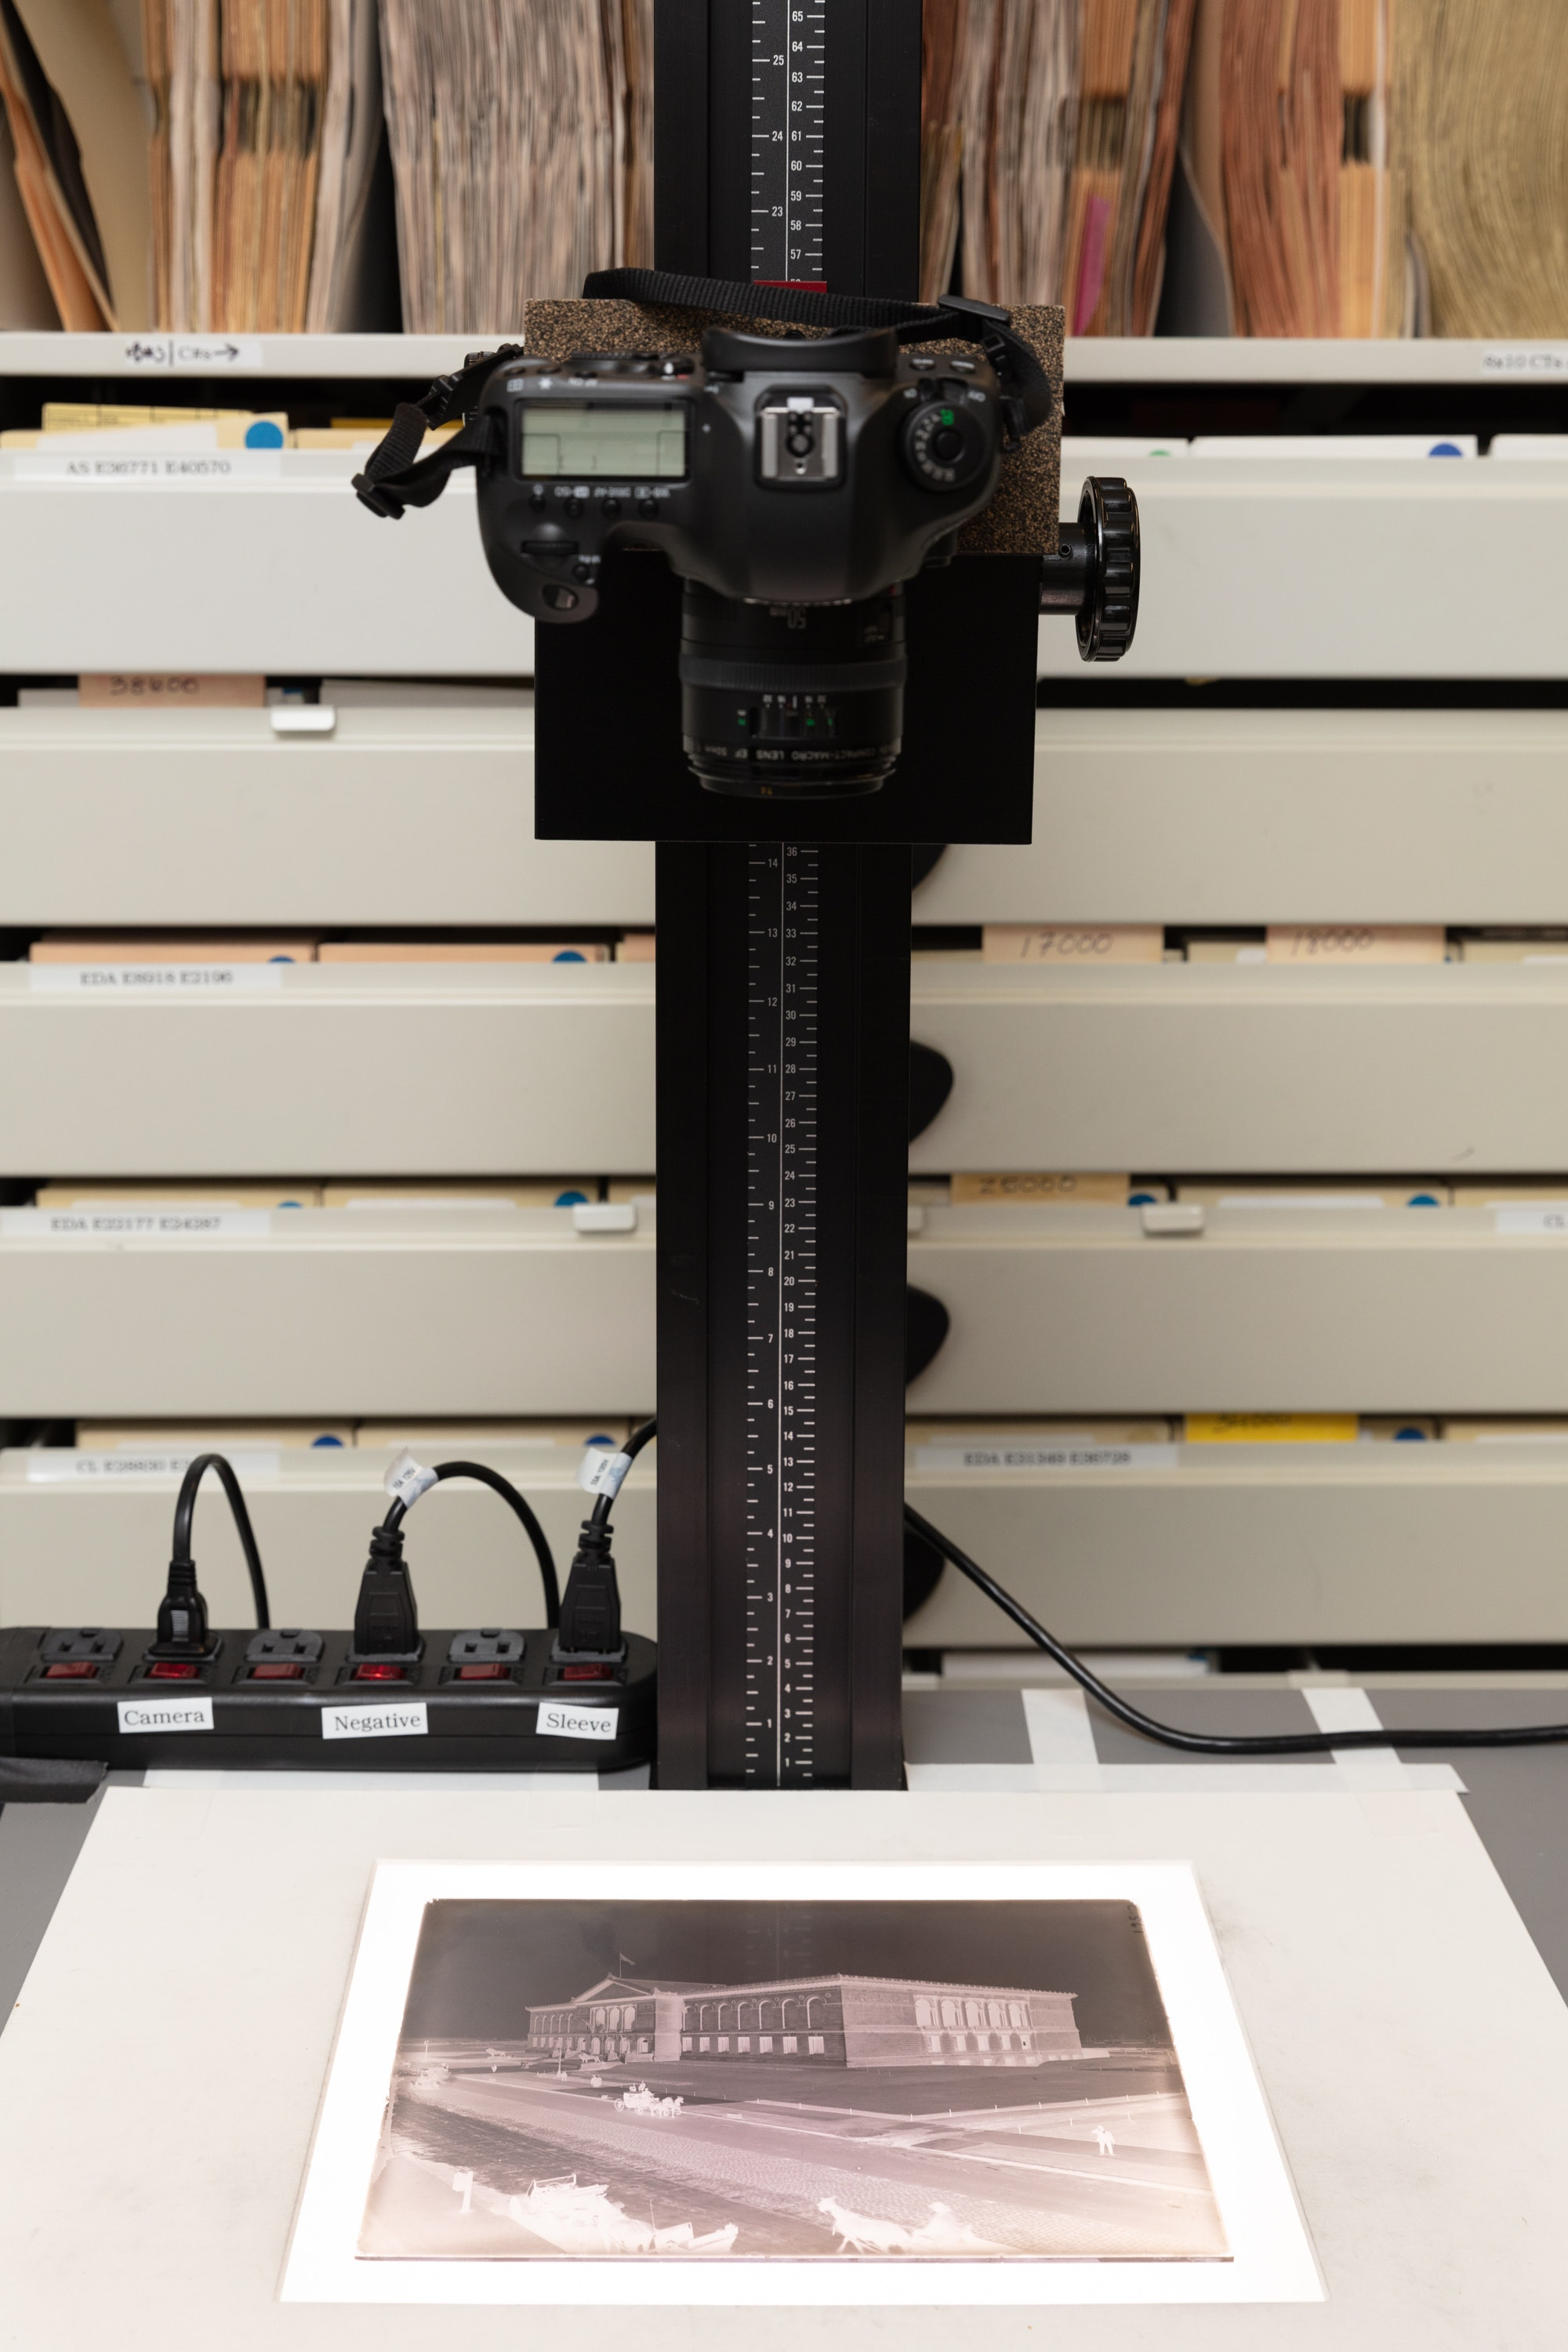 Lightbox and  DSLR camera used to digitize negatives and photos